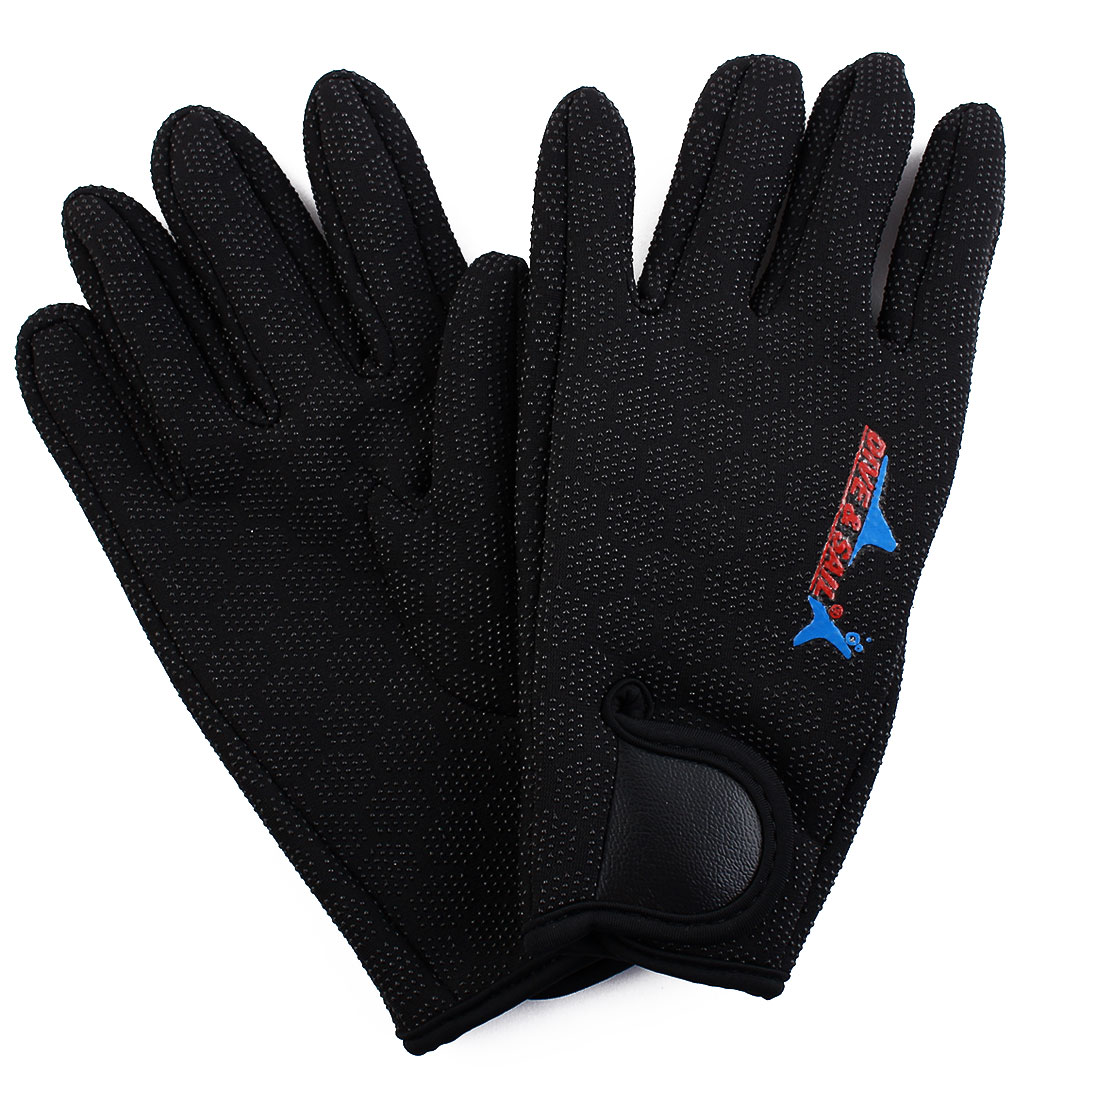 DIVE & SAIL Authorized Surfing Diving Water Sports Hexagonal Pattern Anti-slip Full Finger Hand Protector Gloves Pair Size M